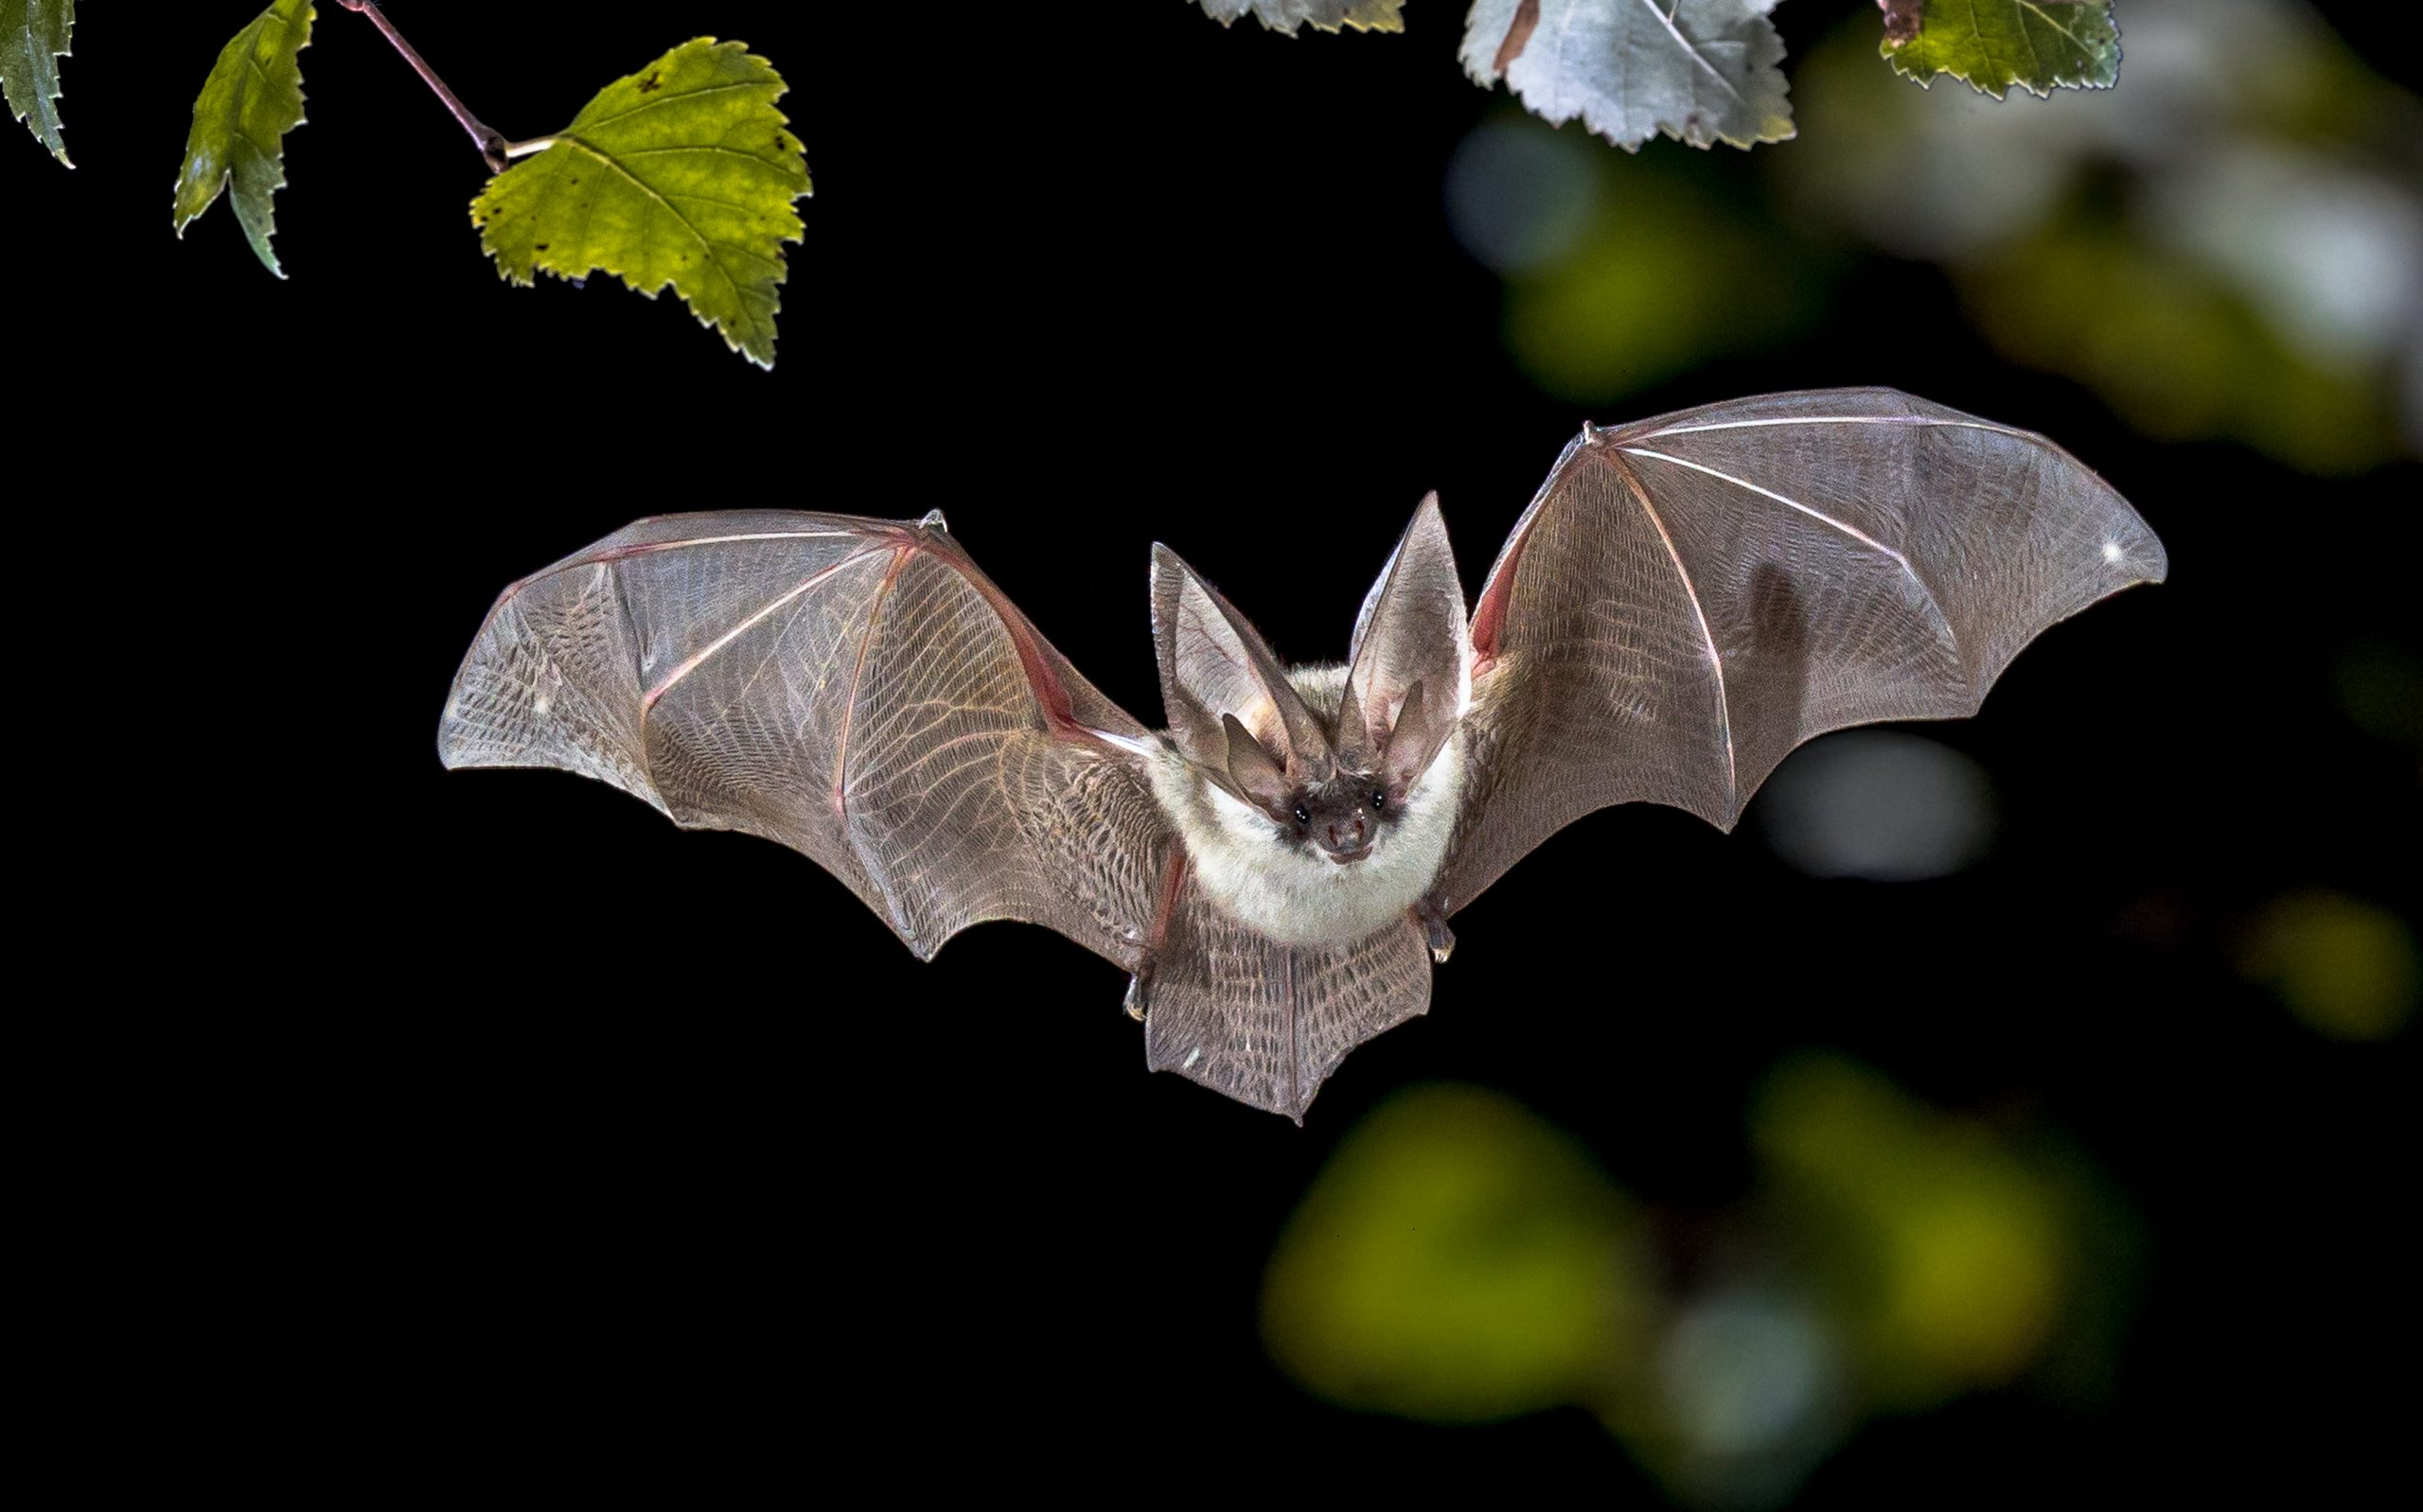 Bat Series – Here comes the night